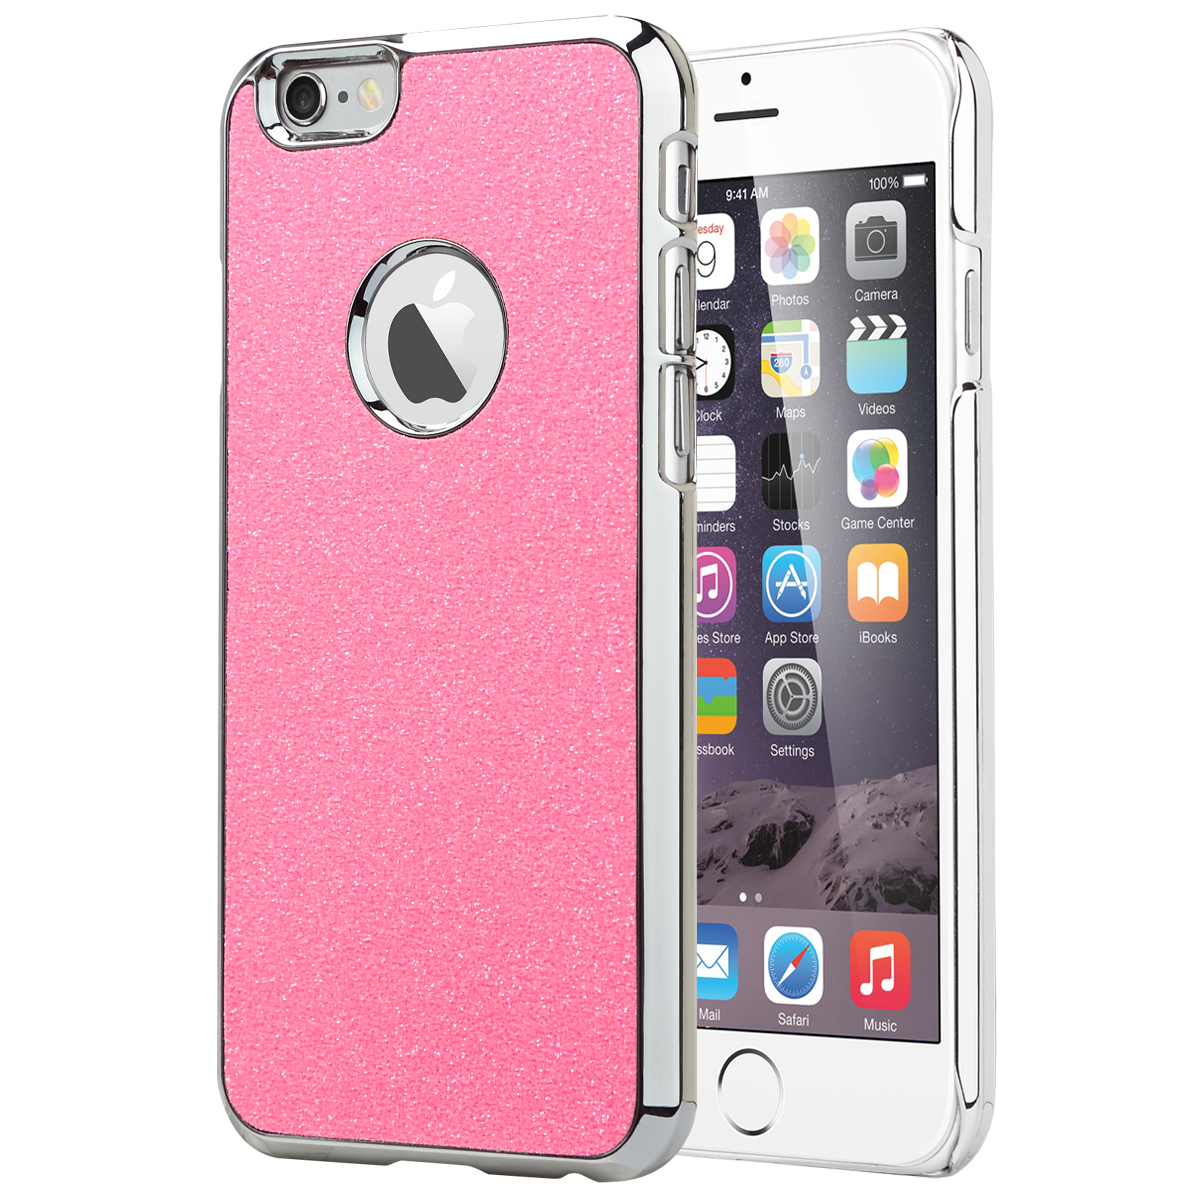 ULAK [Bling Glitter] Crystal Plastic Case with Colored Chrome Coating Cover for Apple iPhone 6 & 6S 4.7 inch Generation